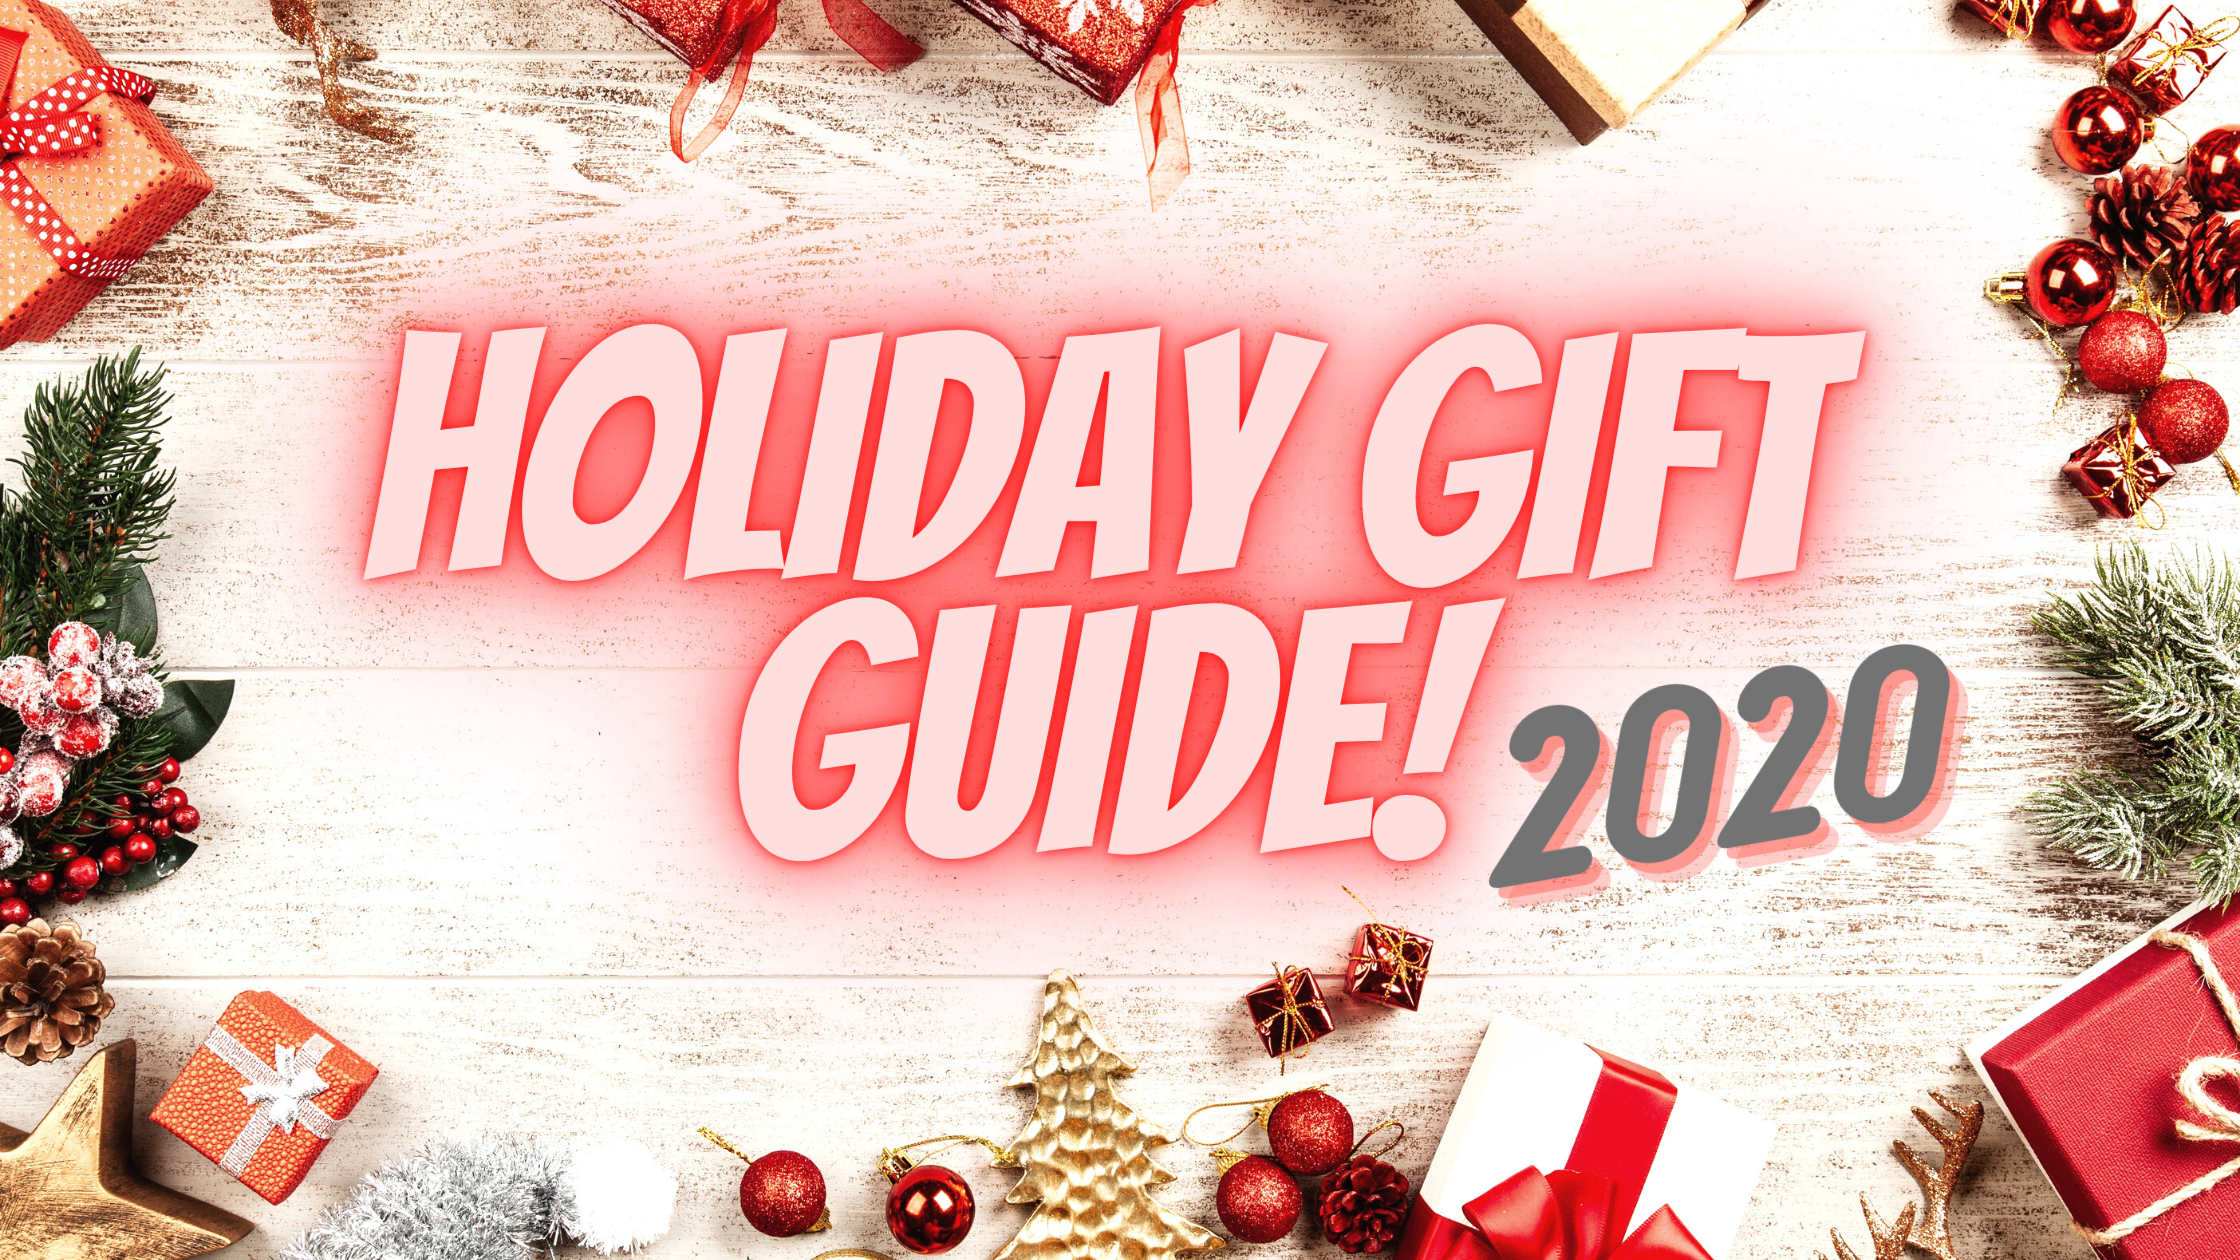 Holiday Gift Guide 2020 Submissions Are Open In 2020 Holiday Gifts Holiday Gift Guide Christmas Gift Guide